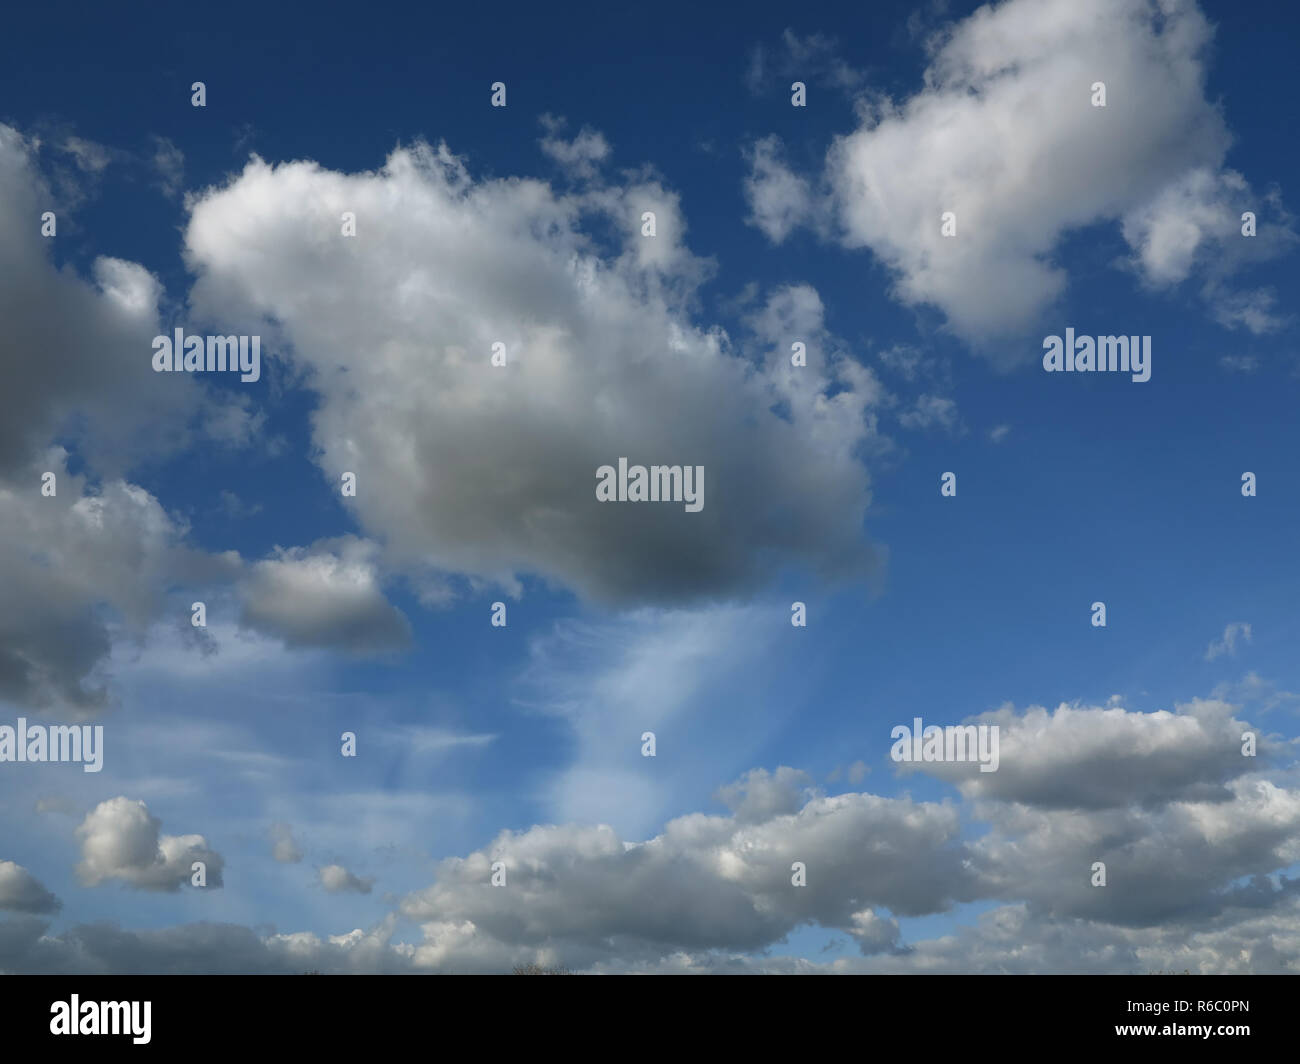 Cloud on the sky - Stock Image